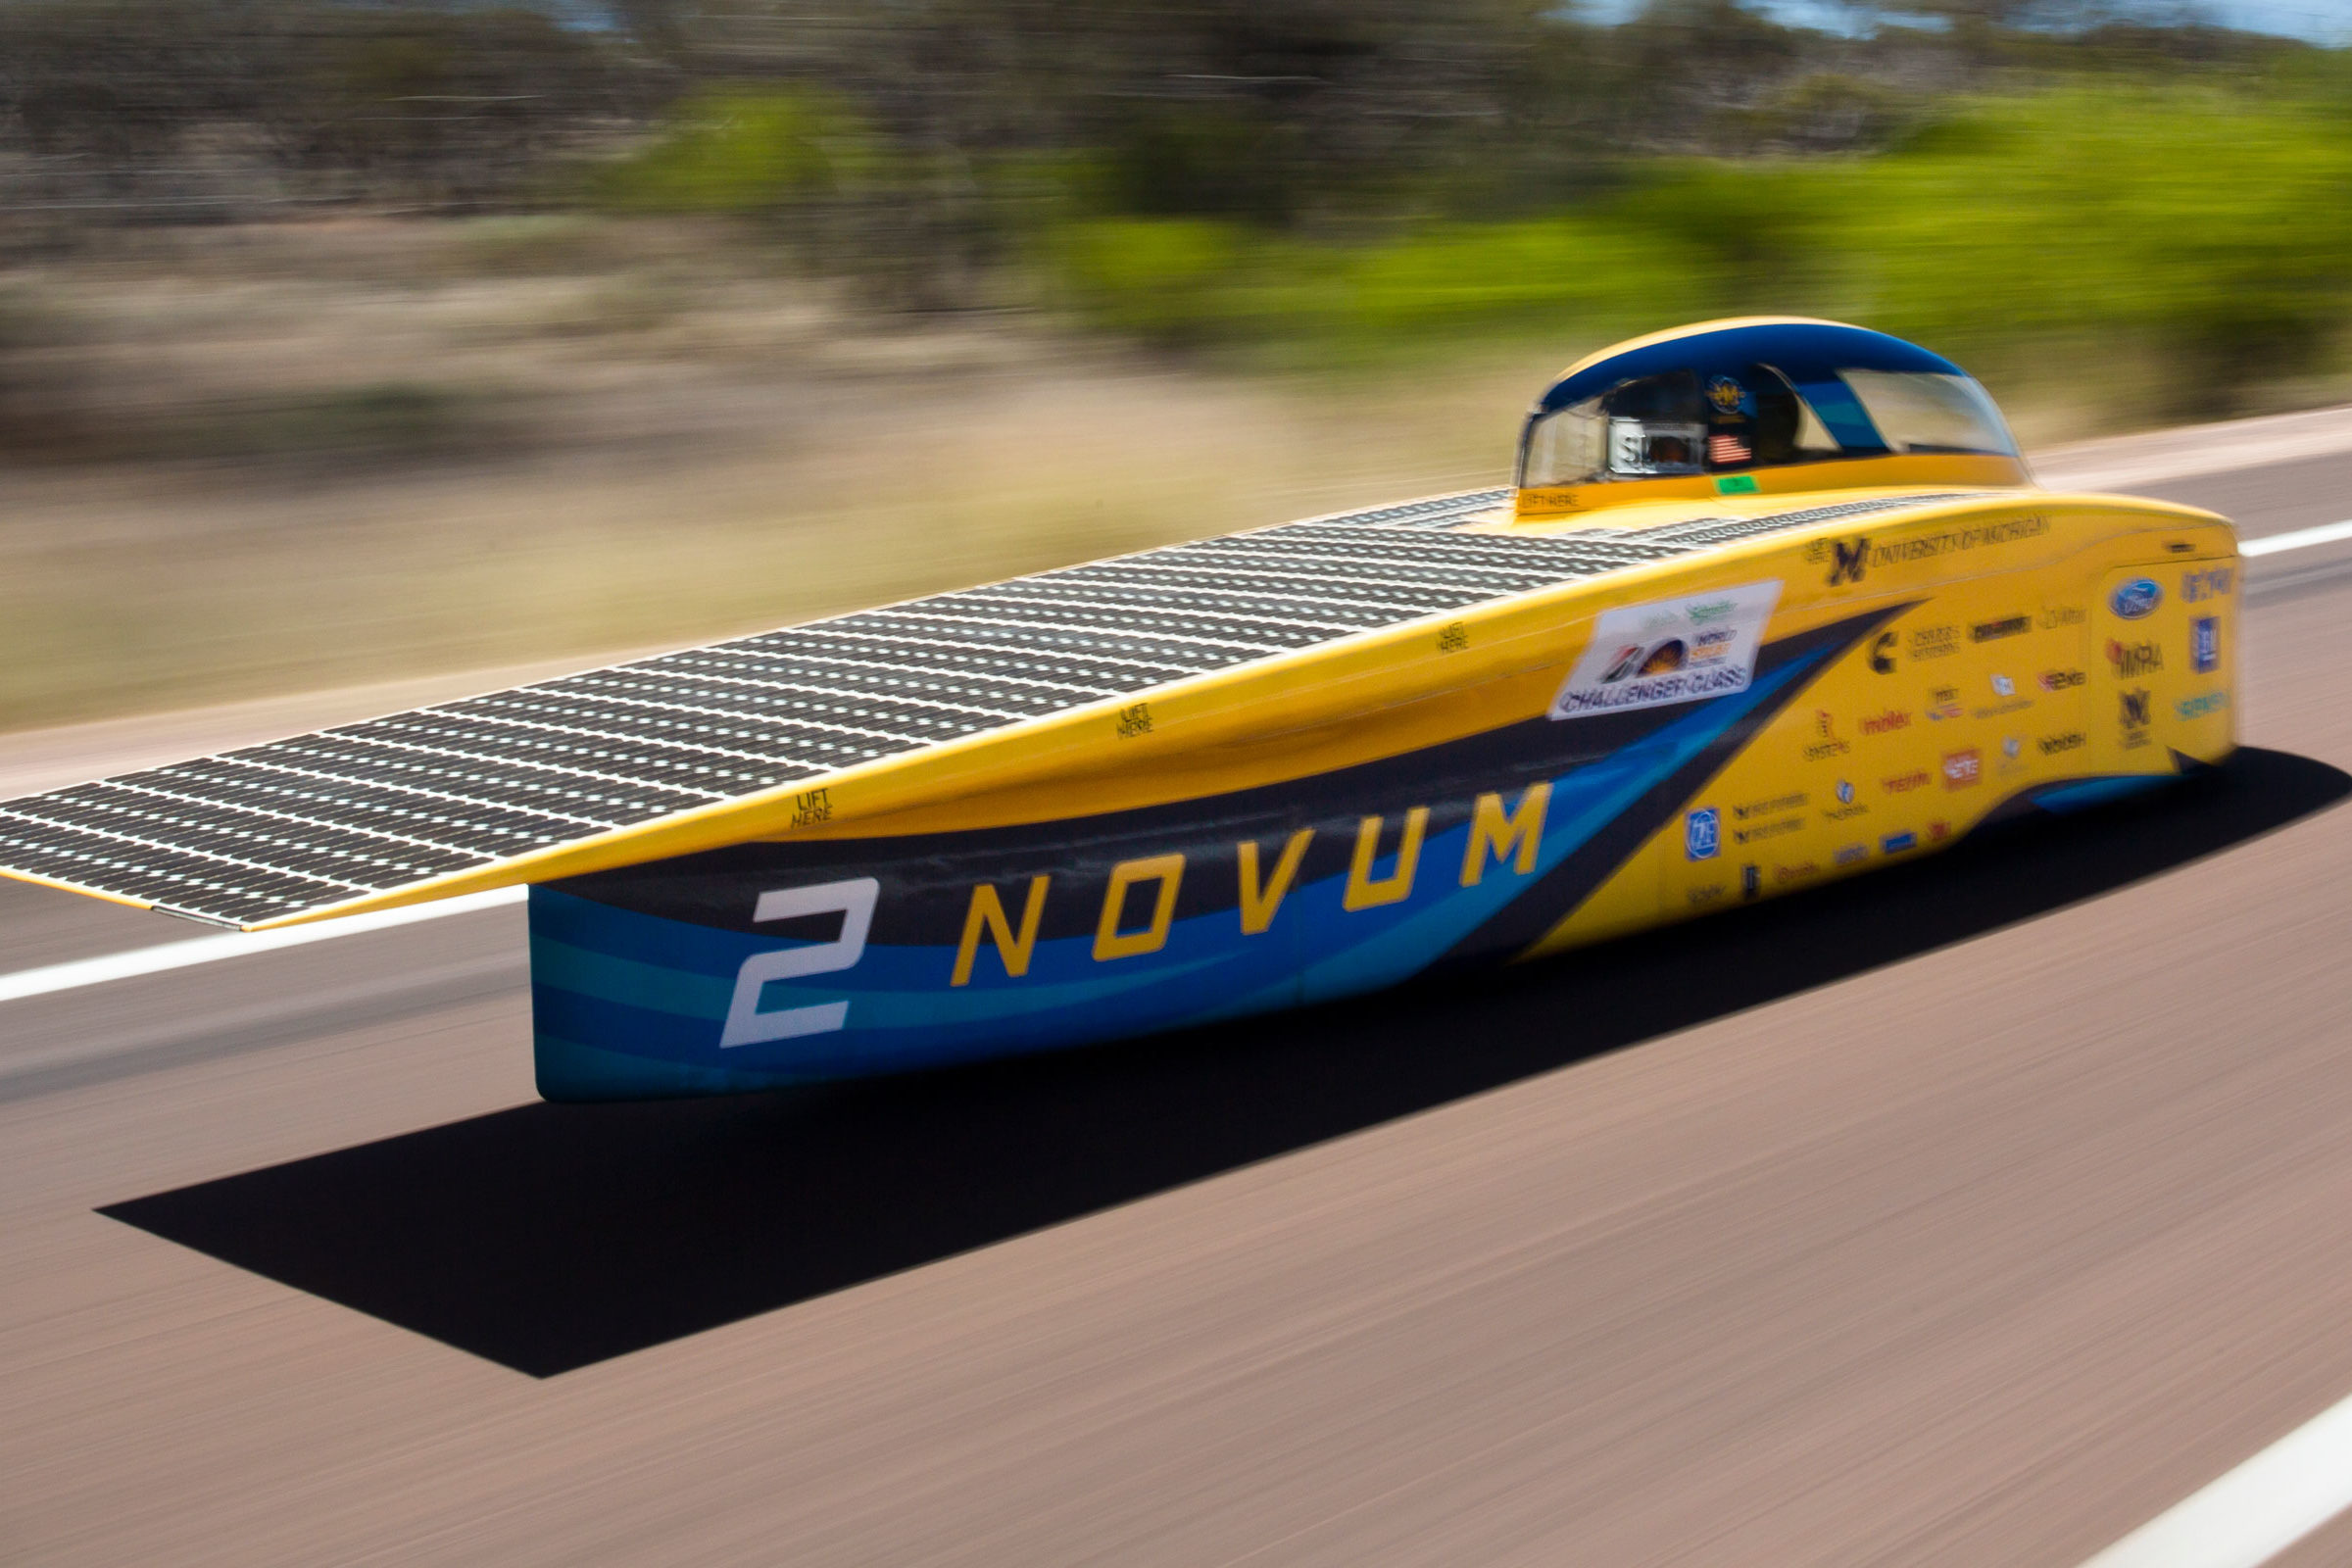 Solar car racing on road in Australia.